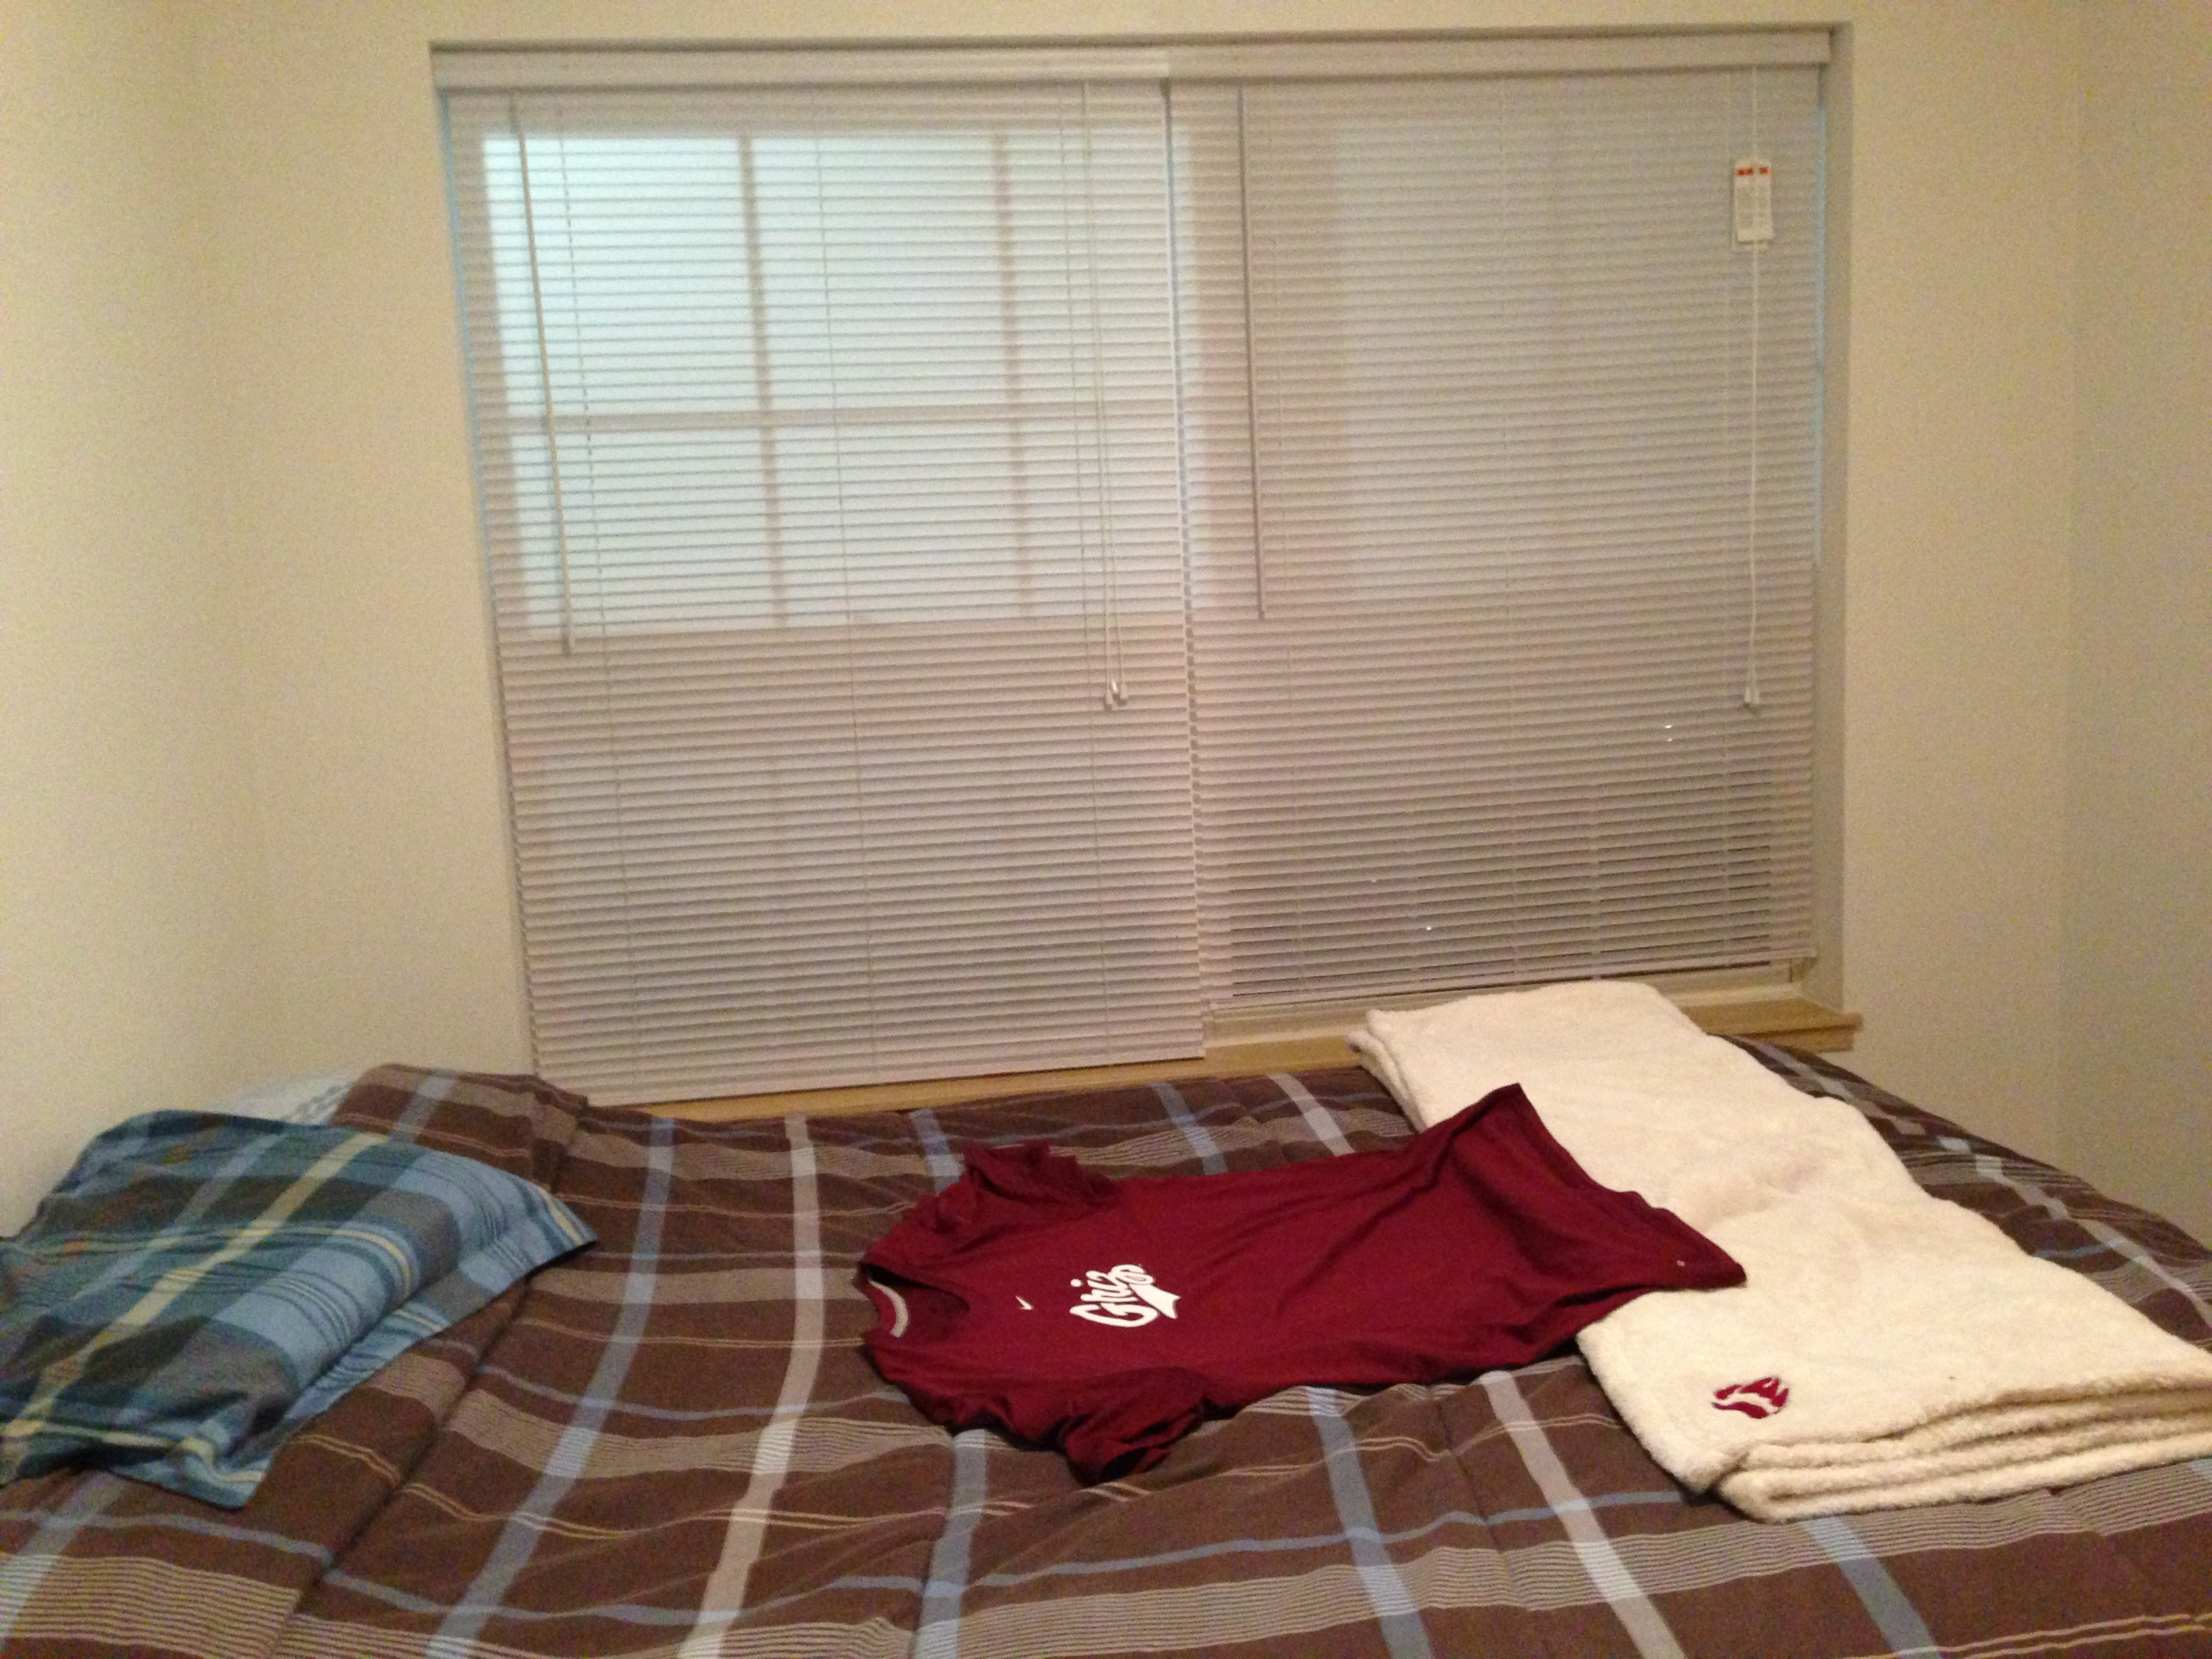 My bed in relation to the window where I could hear the loud chatter.